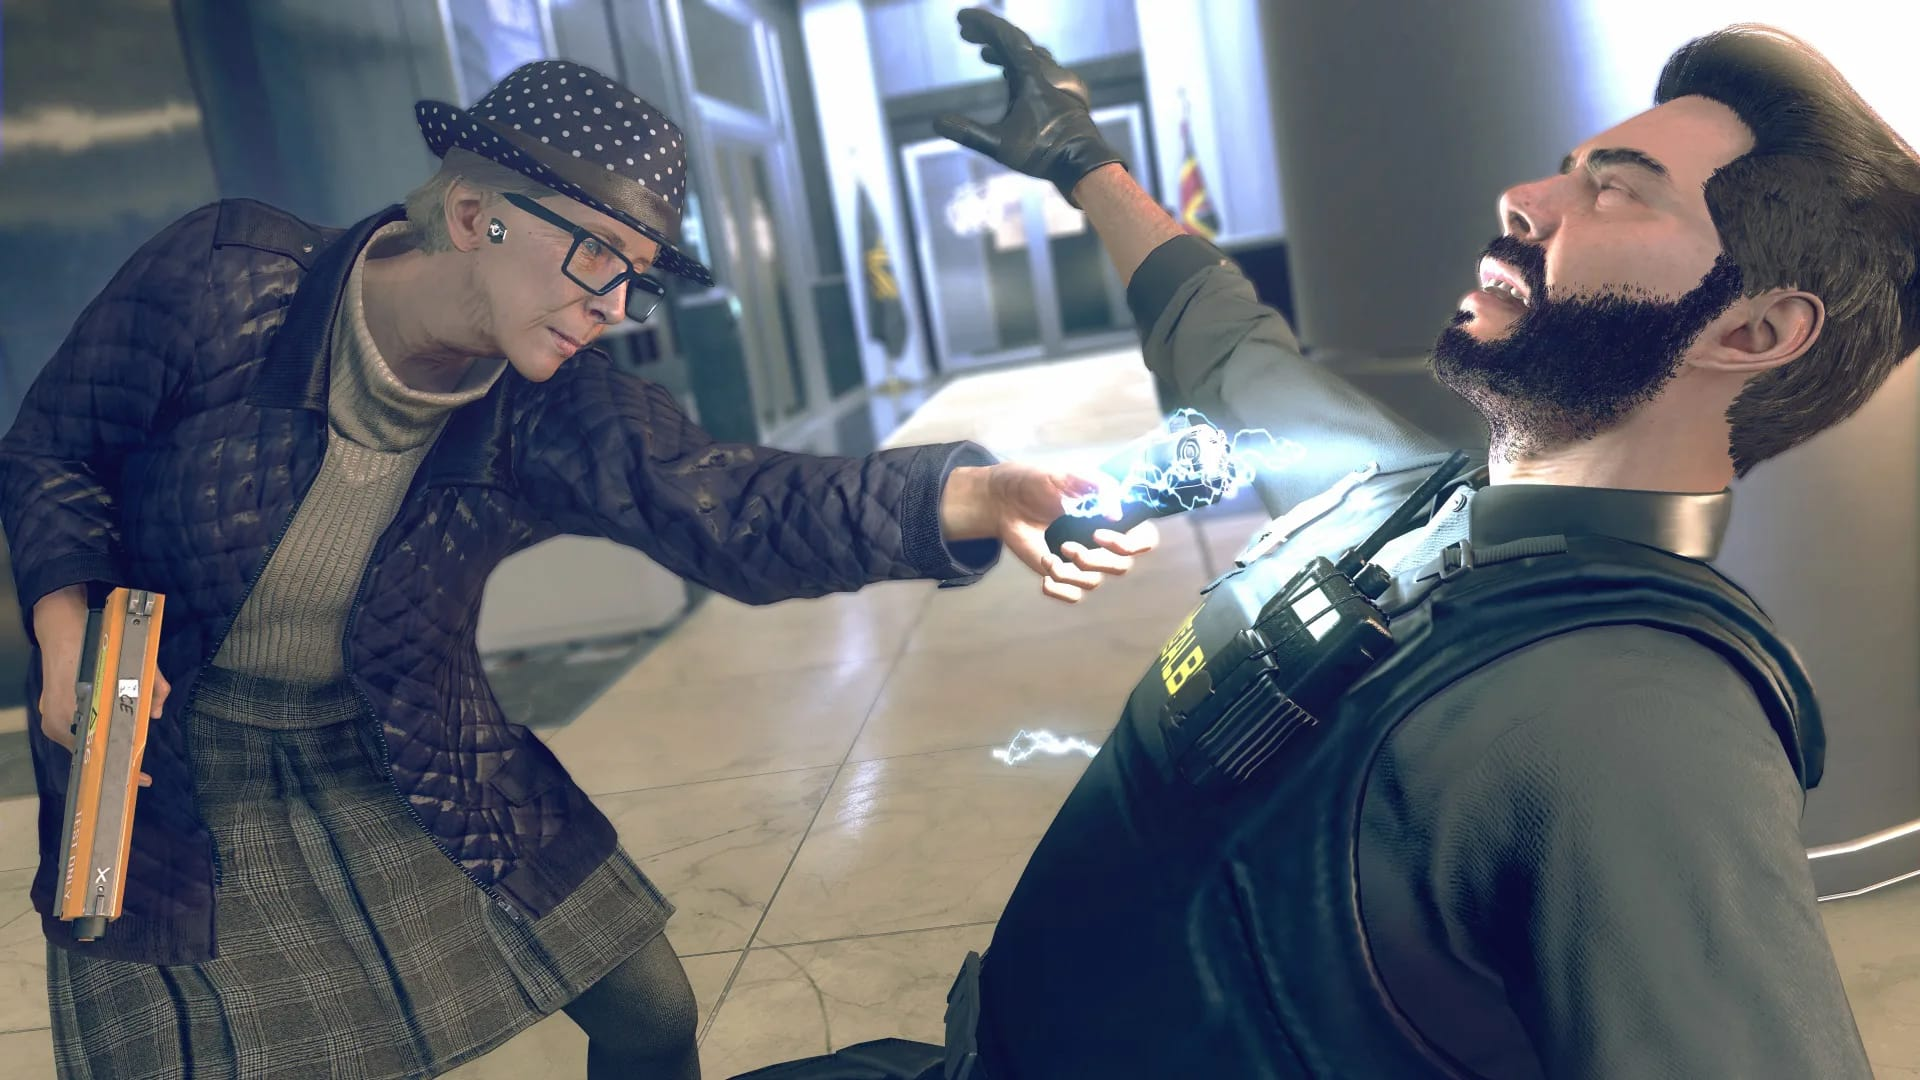 Ubisoft Watch Dogs: Legion impressive underbaked play as anyone NPC mechanic in London